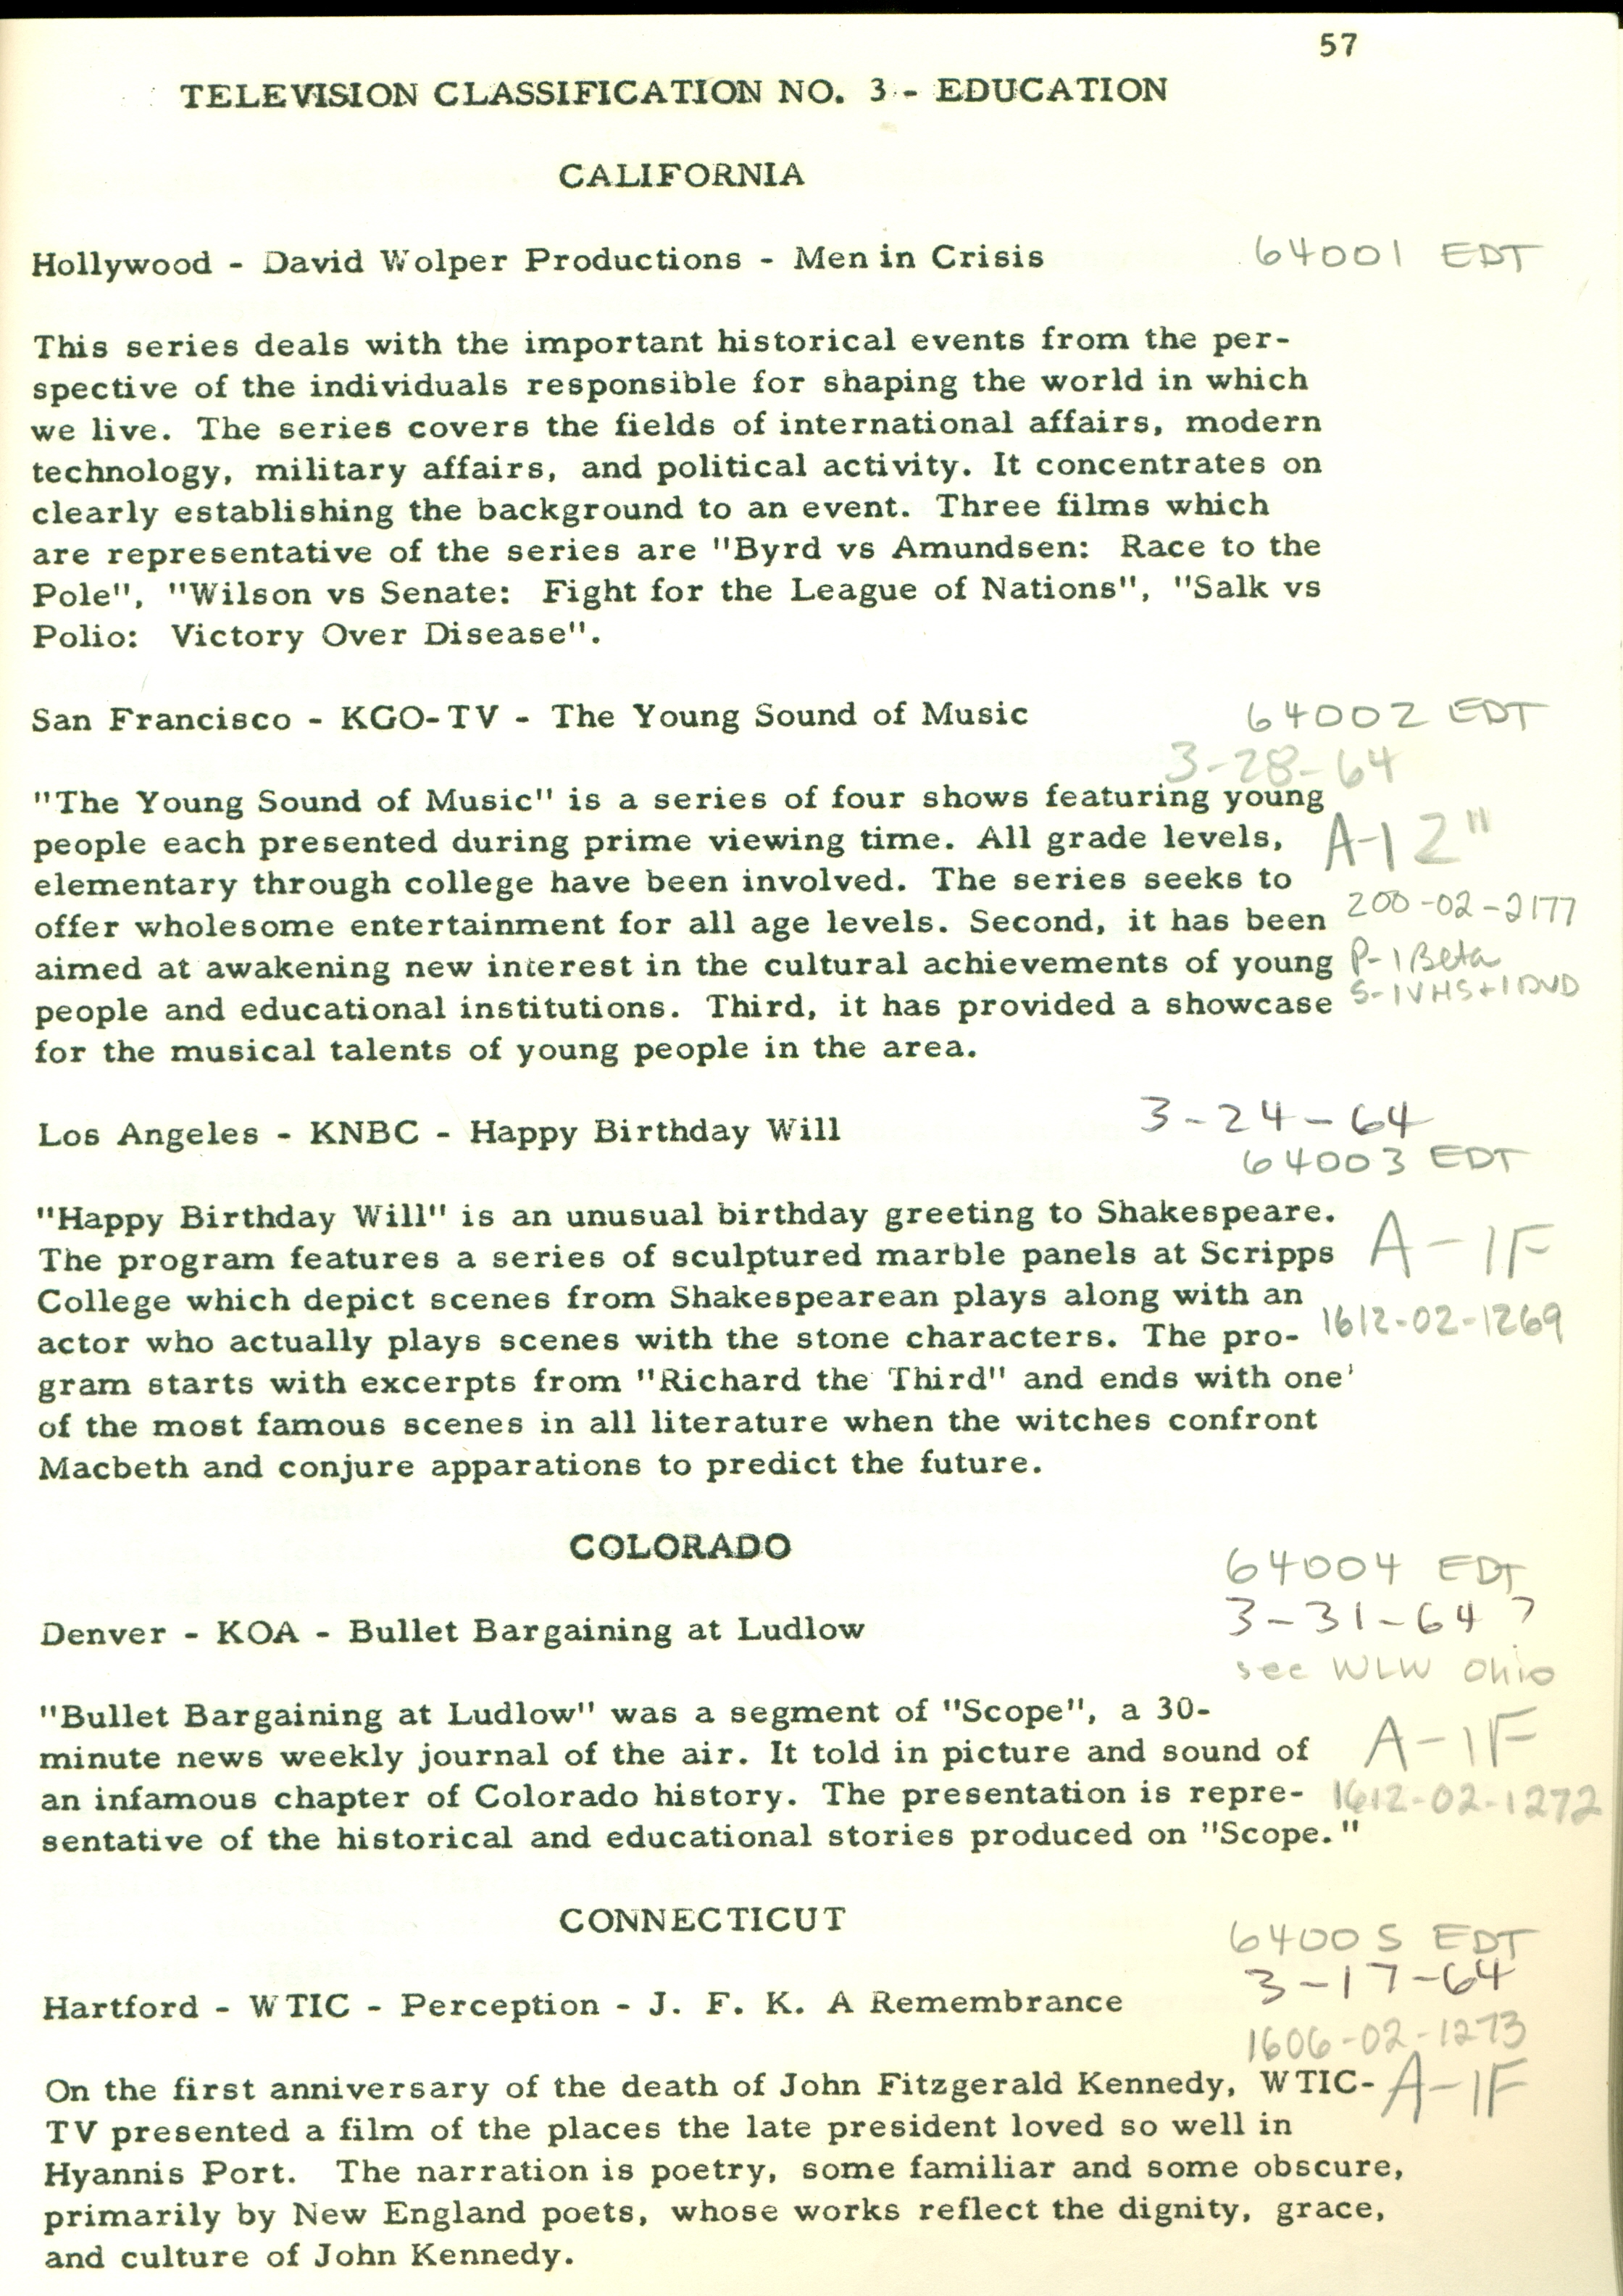 Example of Peabody Awards entry digest, Education category, 1964, George Foster Peabody Awards records, ms3000, Hargrett Rare Book and Manuscript Library, University of Georgia Libraries.